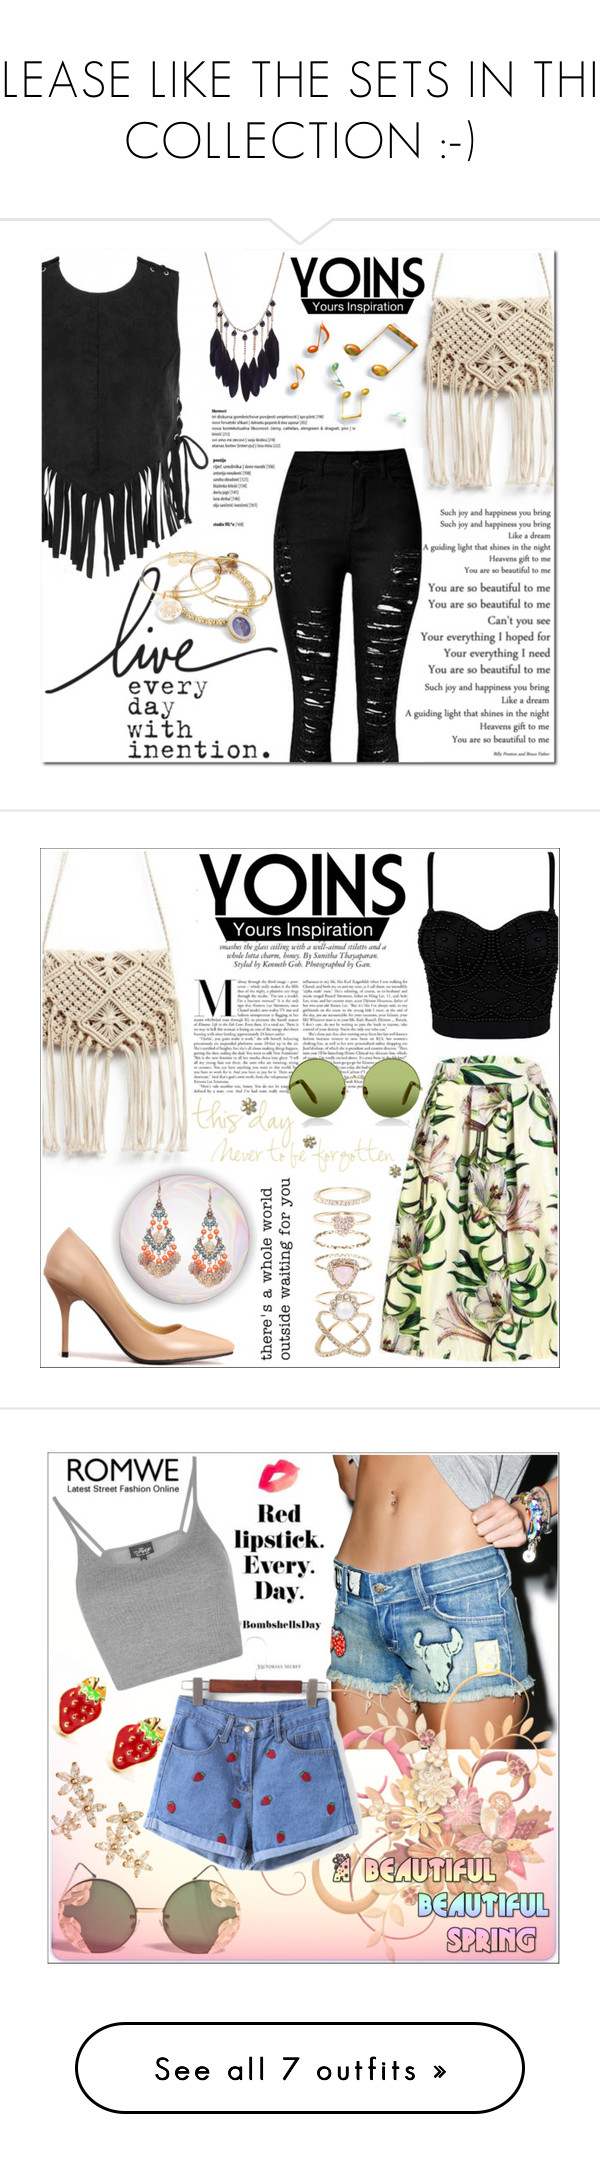 """""""PLEASE LIKE THE SETS IN THIS COLLECTION :-)"""" by selmagorath ❤ liked on Polyvore featuring Alex and Ani, yoins, loveyoins, packforcoachella, Victoria, Victoria Beckham, Accessorize, Bonheur, Siwy, Spitfire and Topshop"""